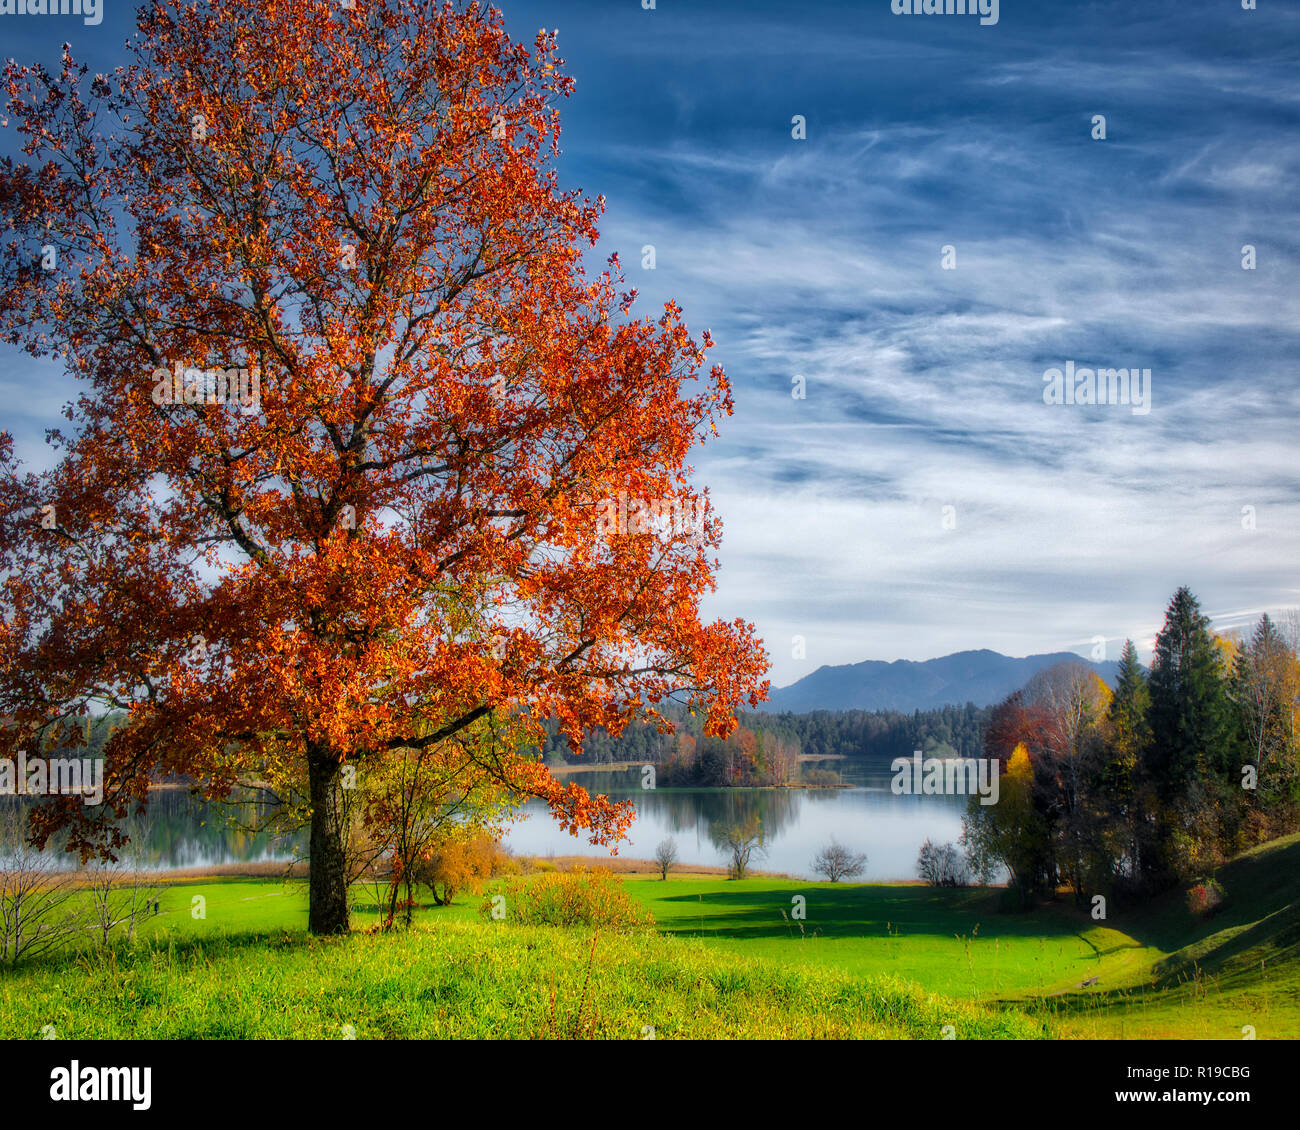 DE - BAVARIA: Tranquil scene at the Ostersee (Lake) near Iffeldorf - Stock Image